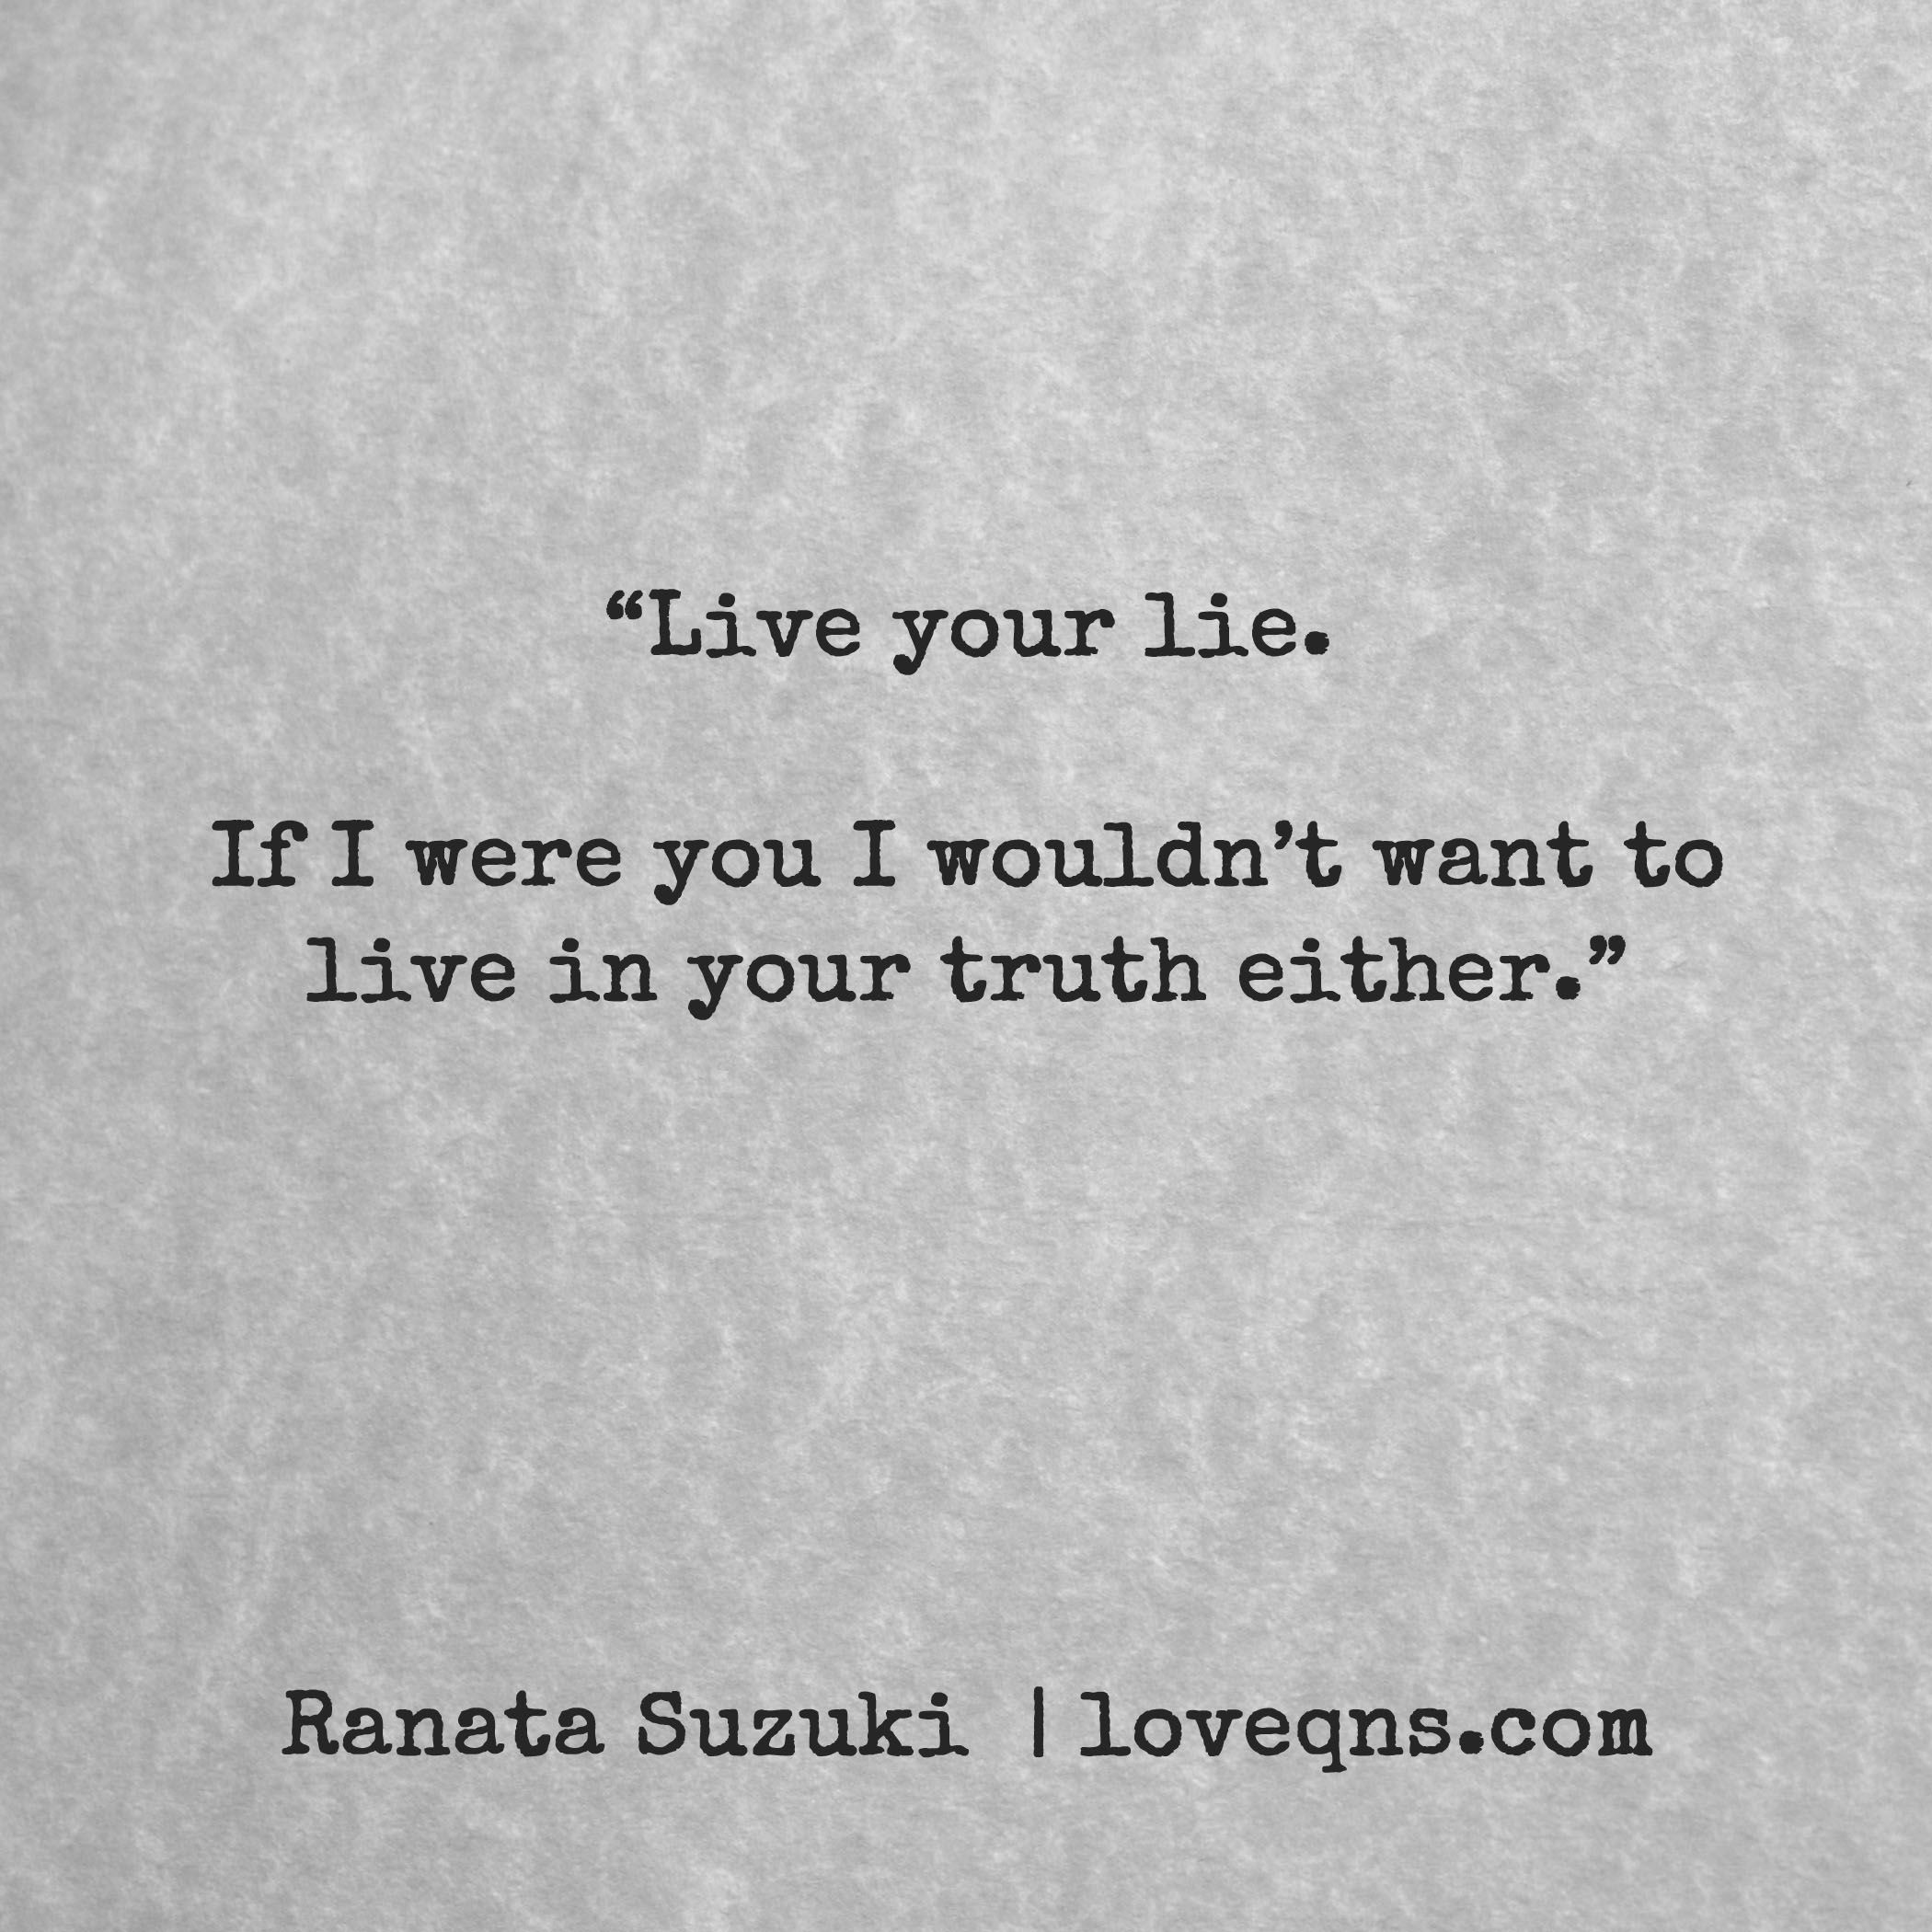 Deception Love Quotes Live Your Lieif I Were You I Wouldn't Want To Live In Your Truth